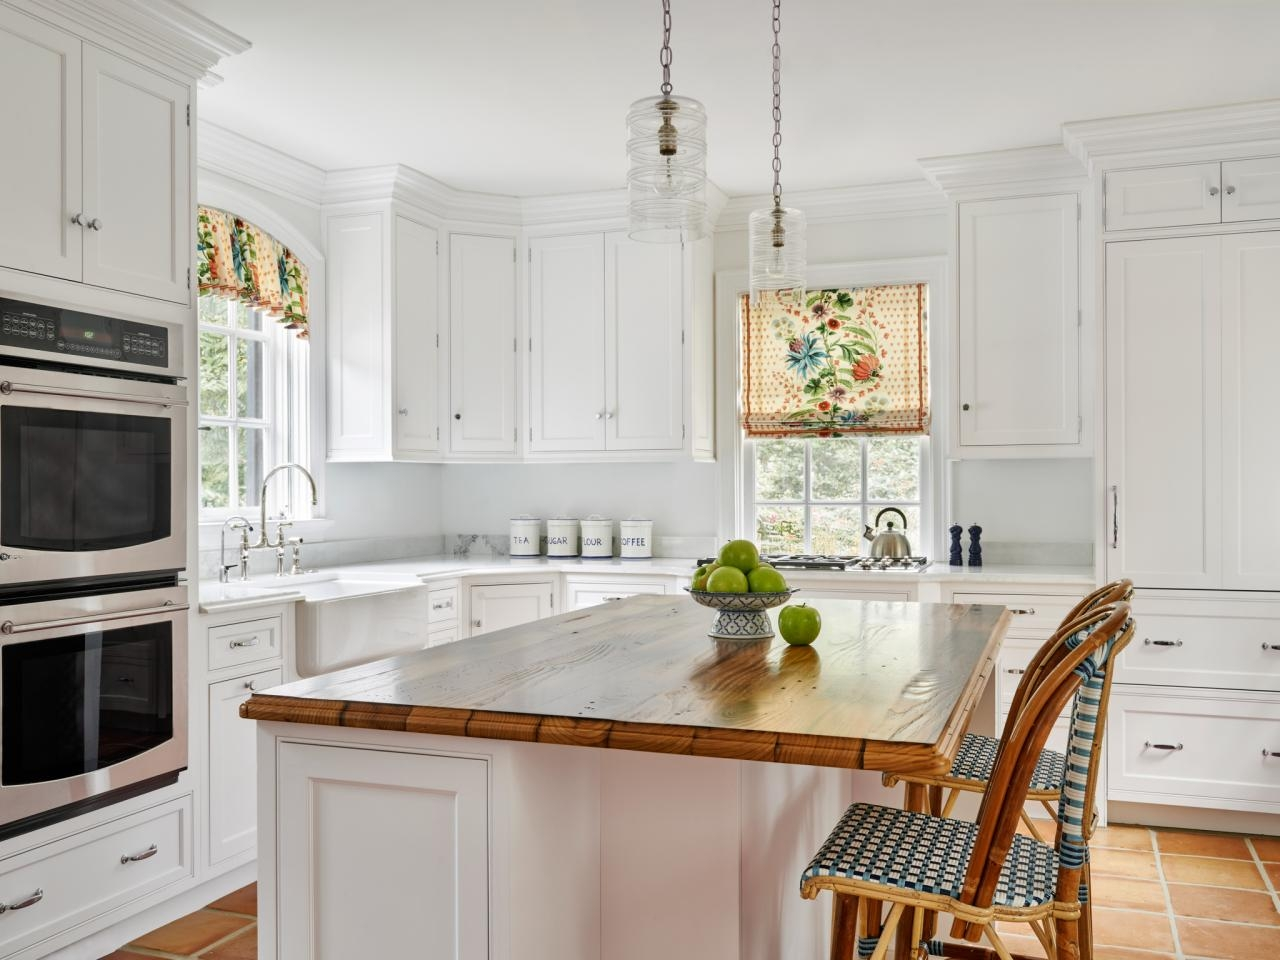 Choosing the right kitchen window treatments